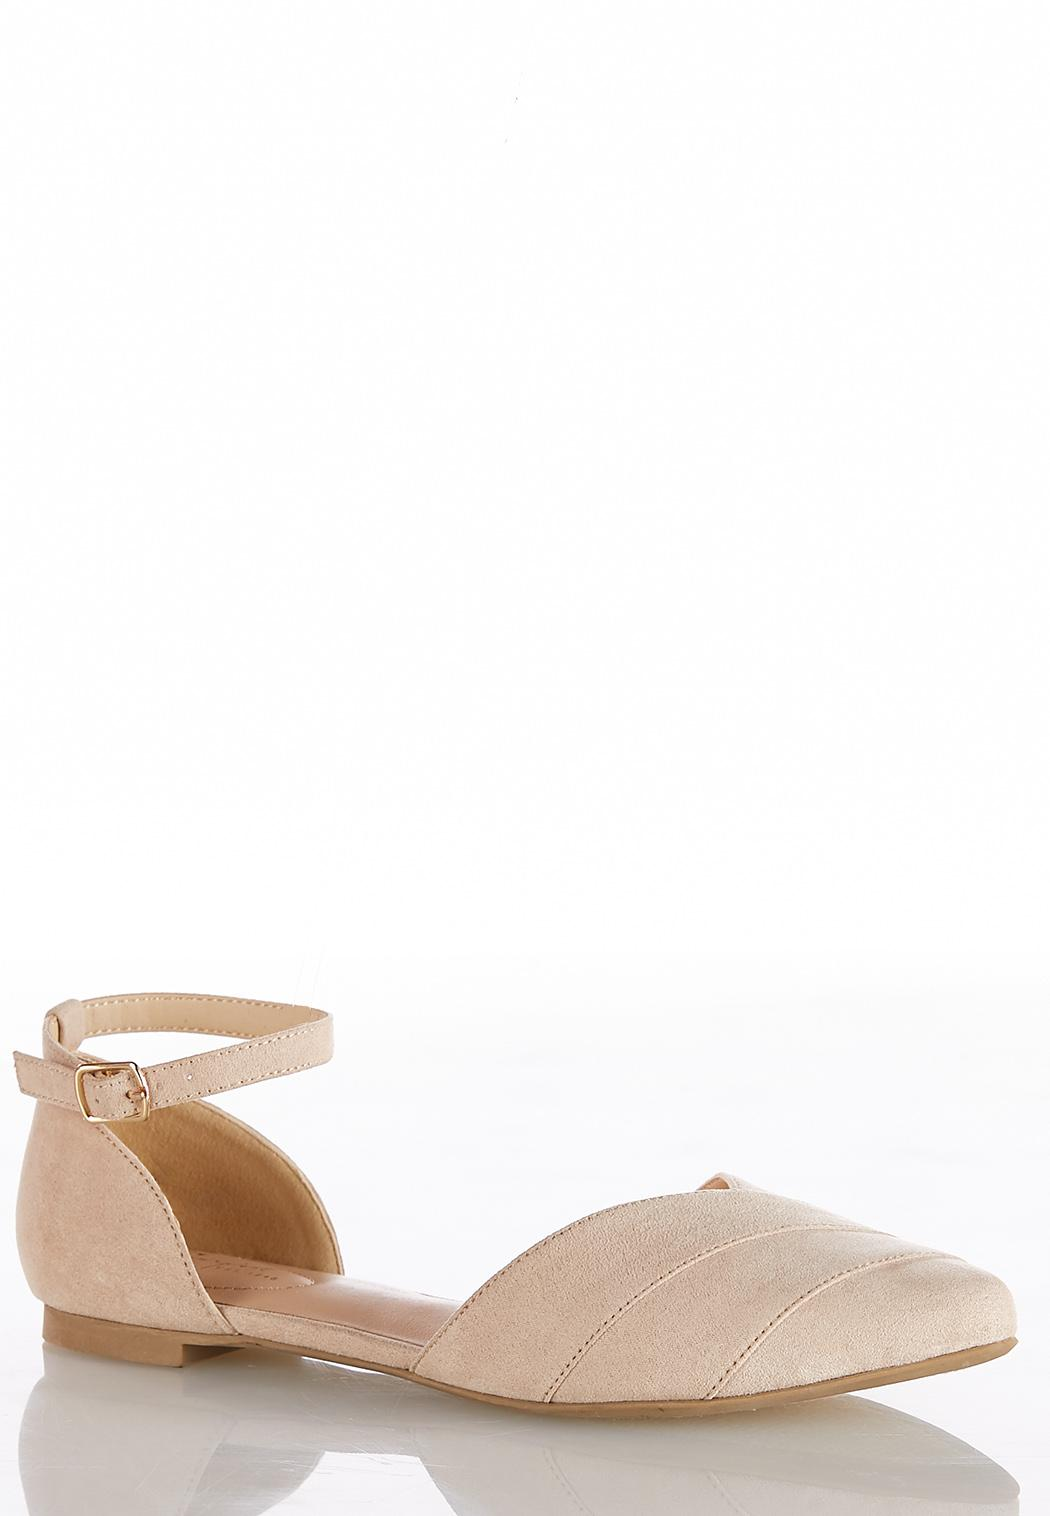 Ankle Strap Two Piece Flats